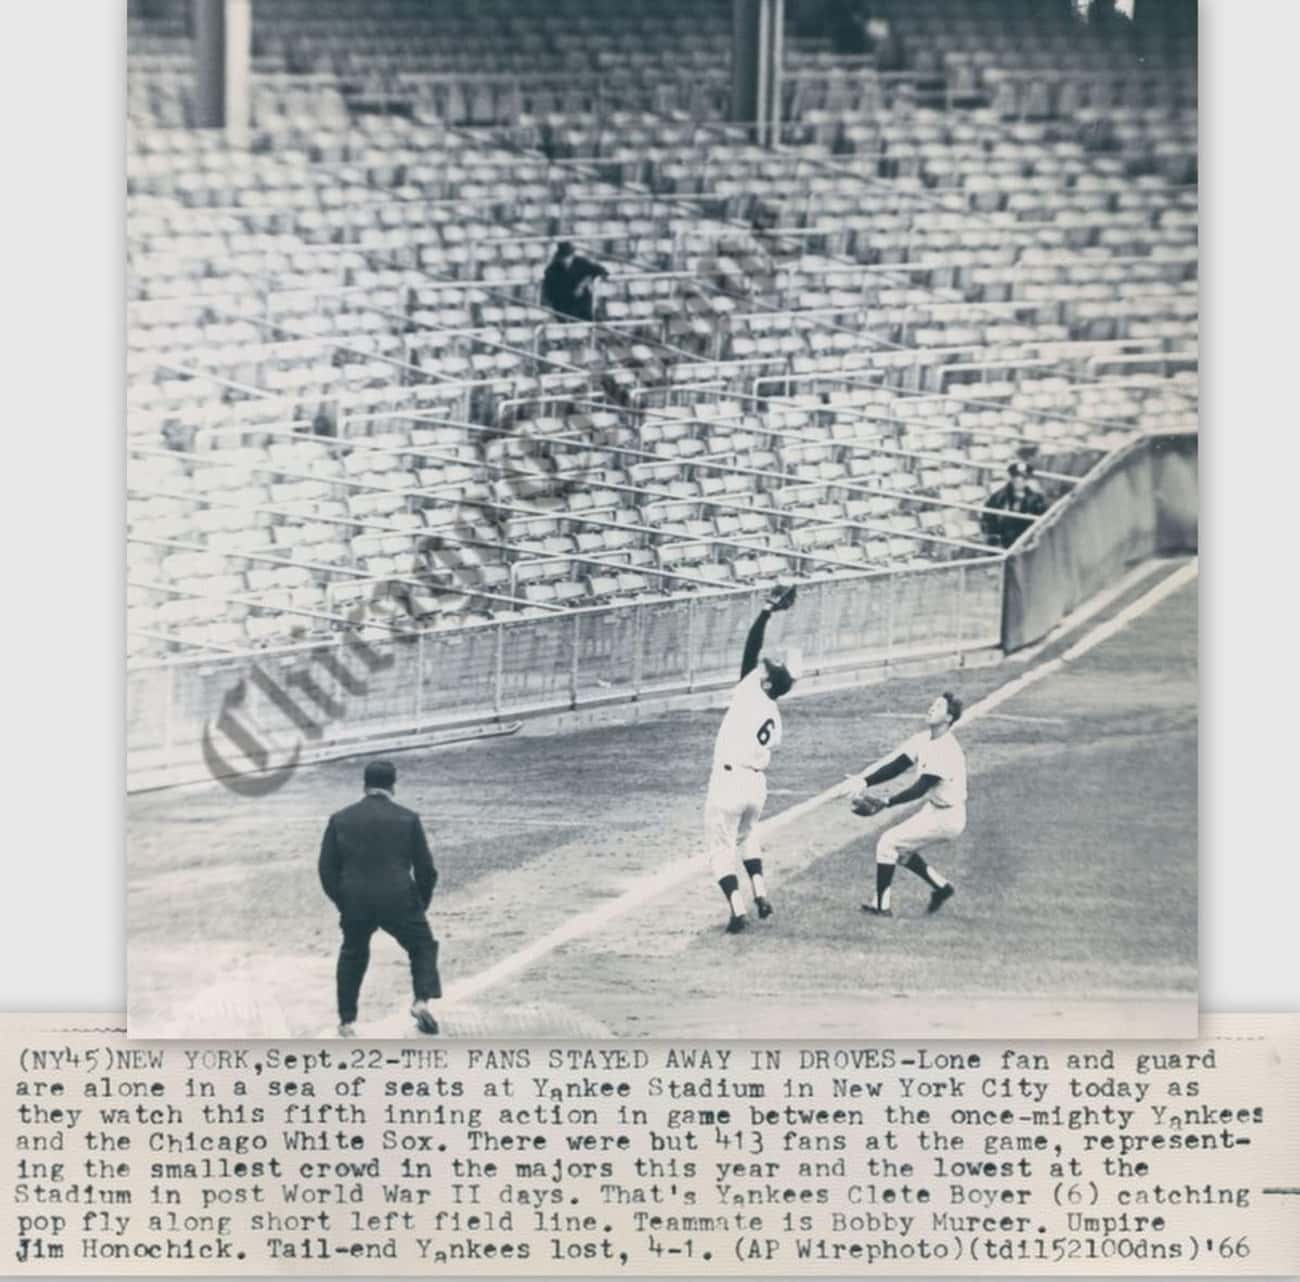 Yankees fans straight up quit supporting their team in 1966.